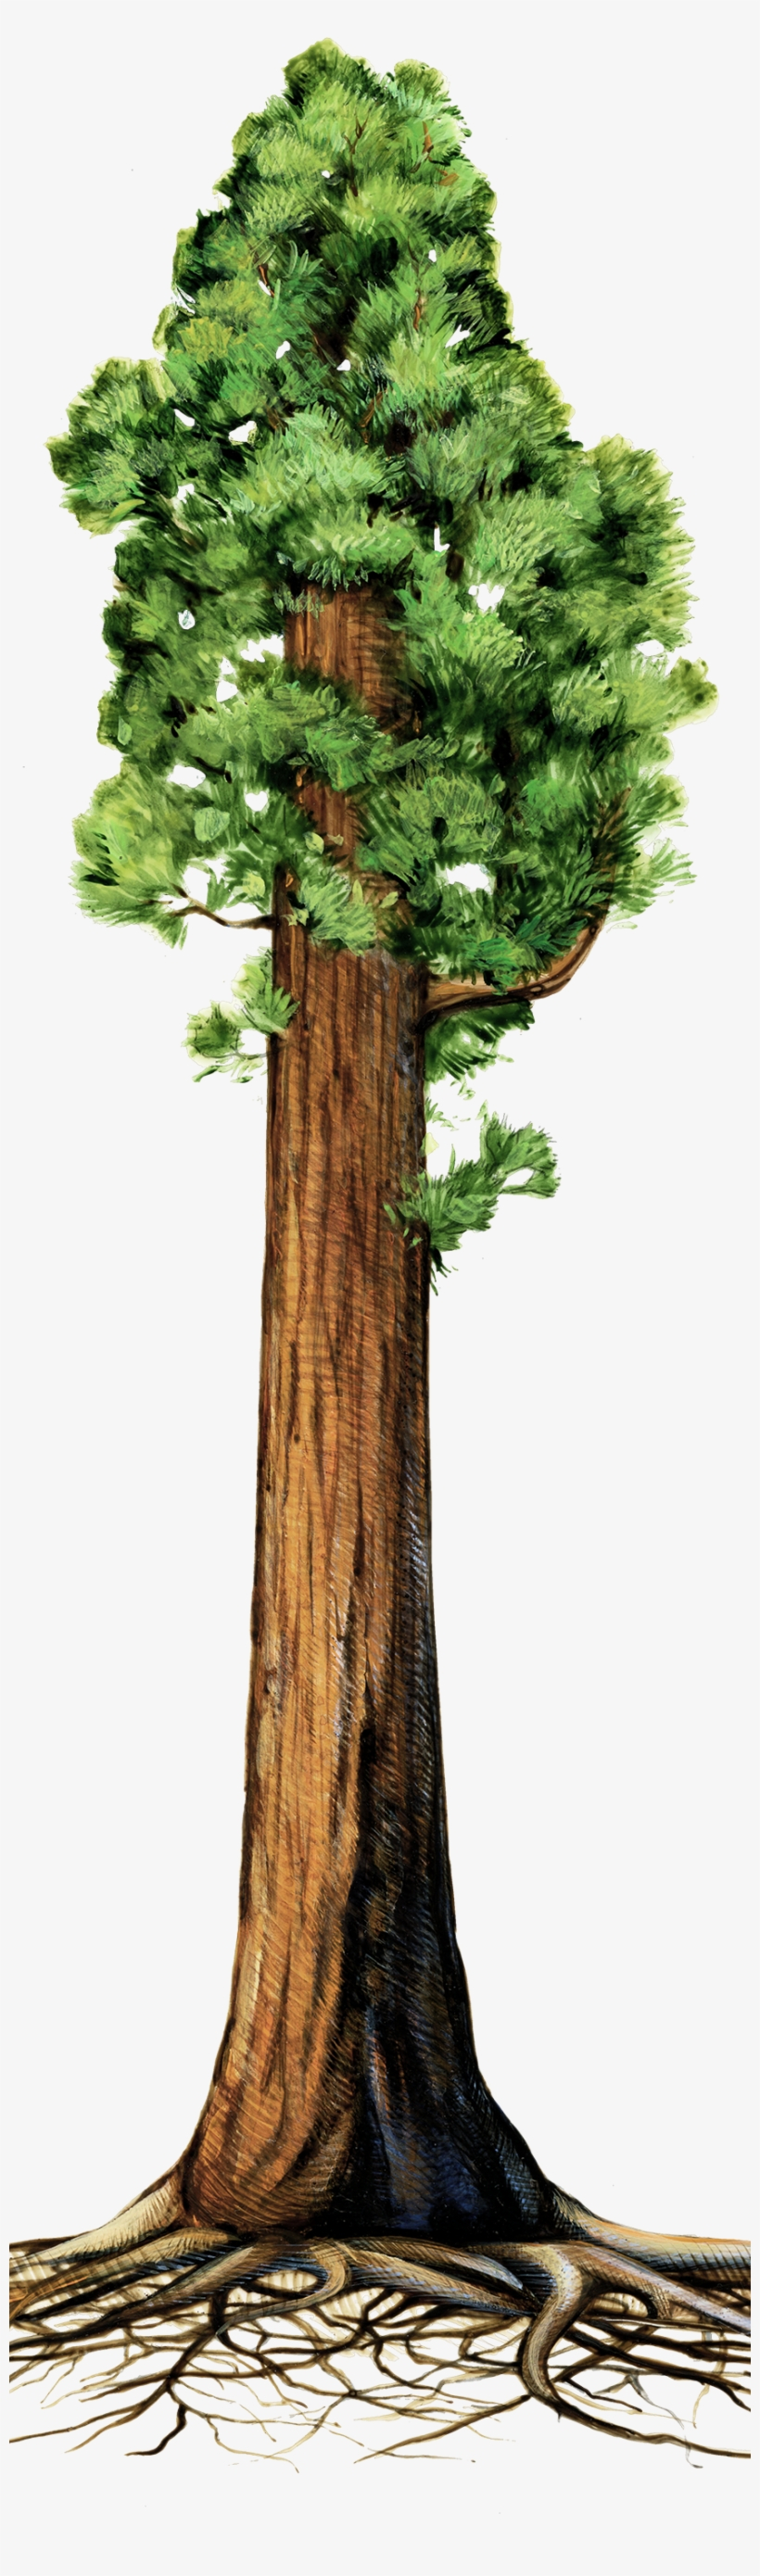 Drawn Roots Sequoia Tree - Giant Redwood Tree Clipart, transparent png #218591